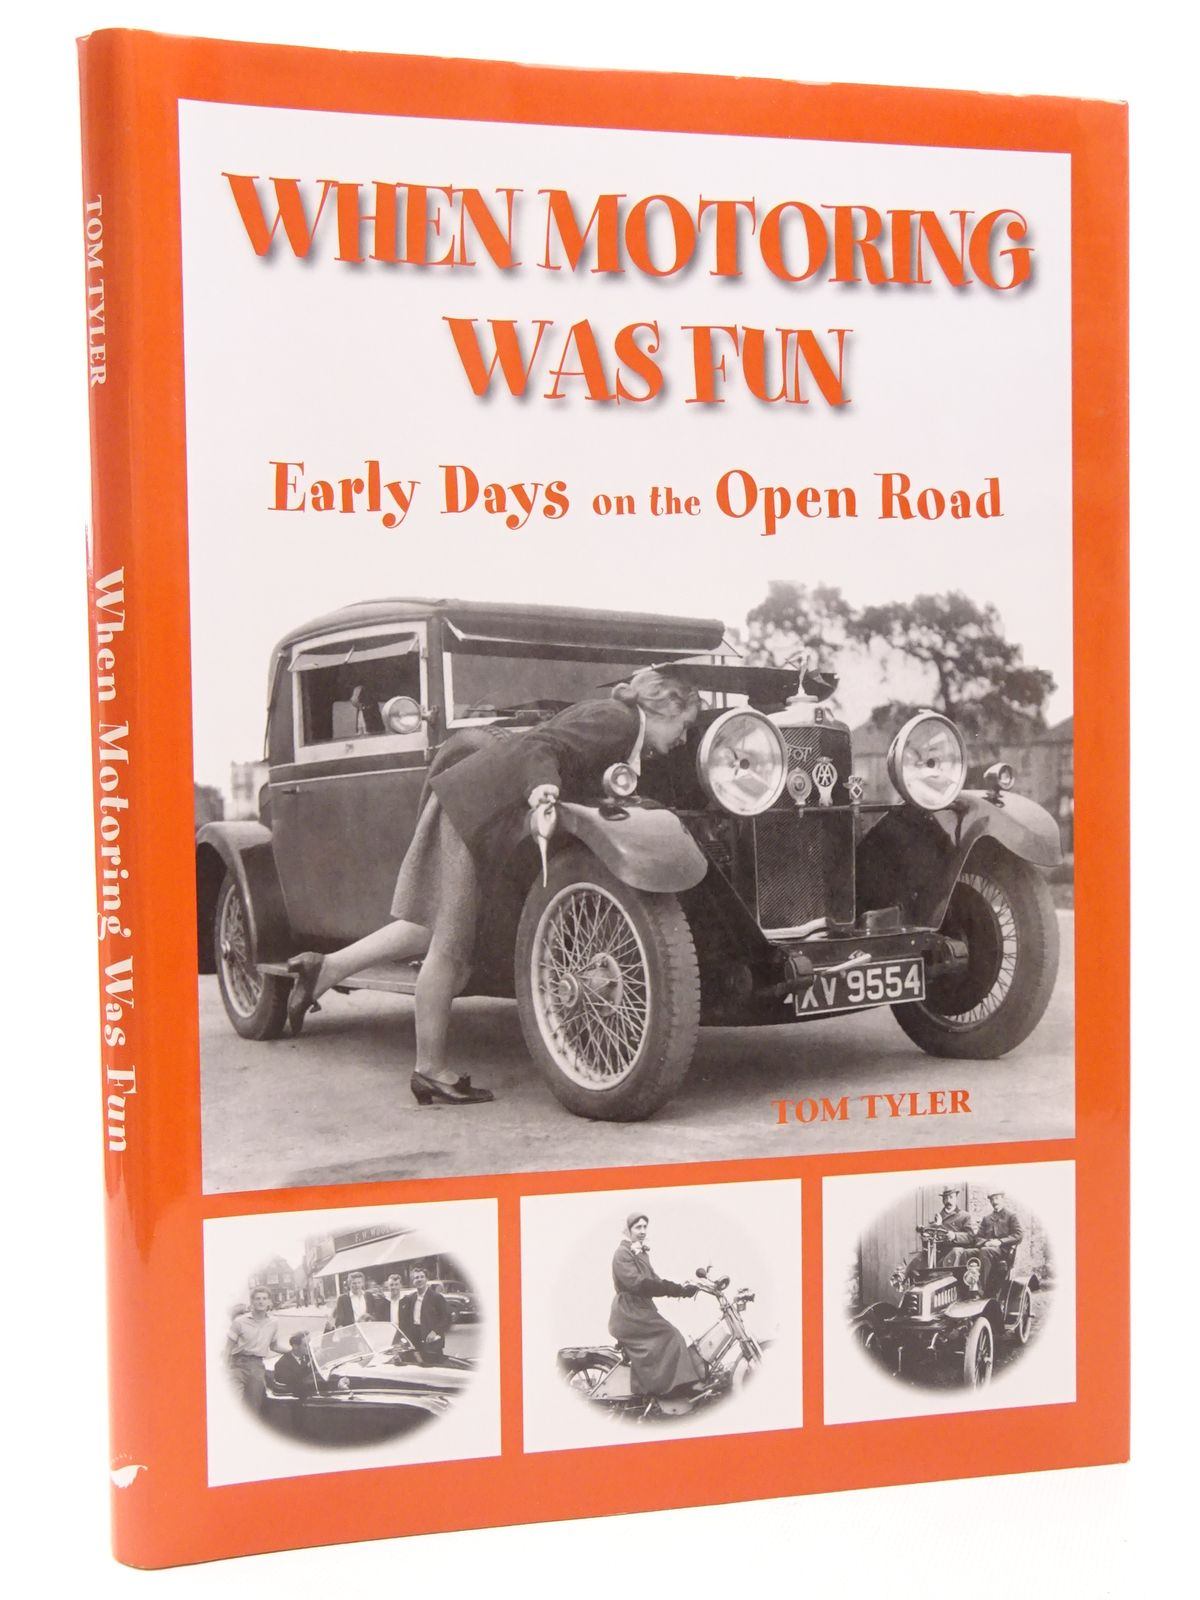 Photo of WHEN MOTORING WAS FUN EARLY DAYS ON THE OPEN ROAD written by Tyler, Tom published by Halsgrove (STOCK CODE: 1815735)  for sale by Stella & Rose's Books